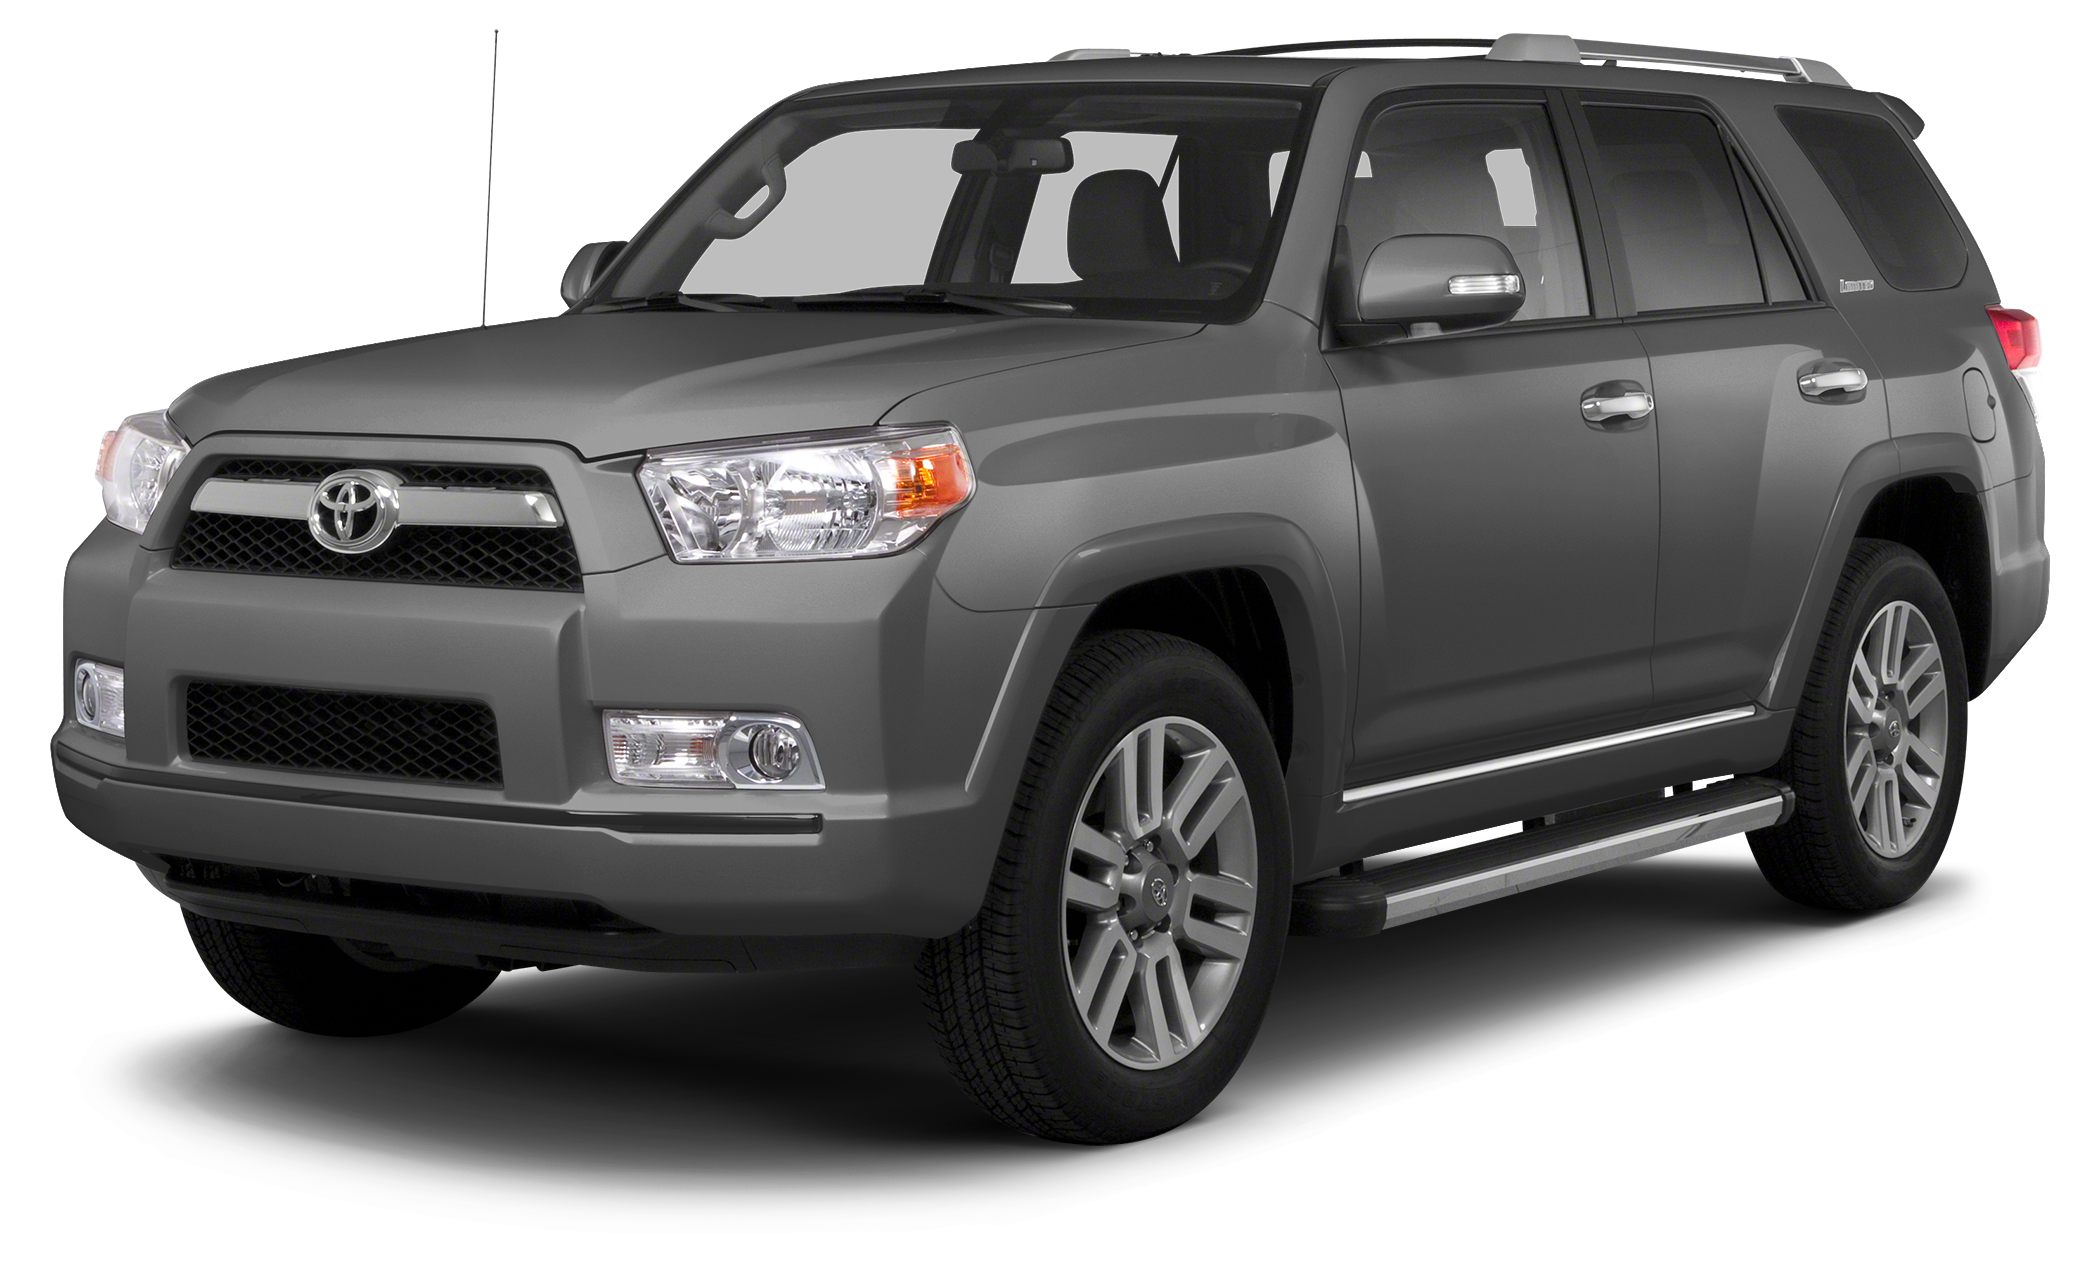 2013 Toyota 4Runner SR5 SR5 trim MAGNETIC GRAY METALLIC exterior and BLACK UPPERSEAT GRAPHITE LO